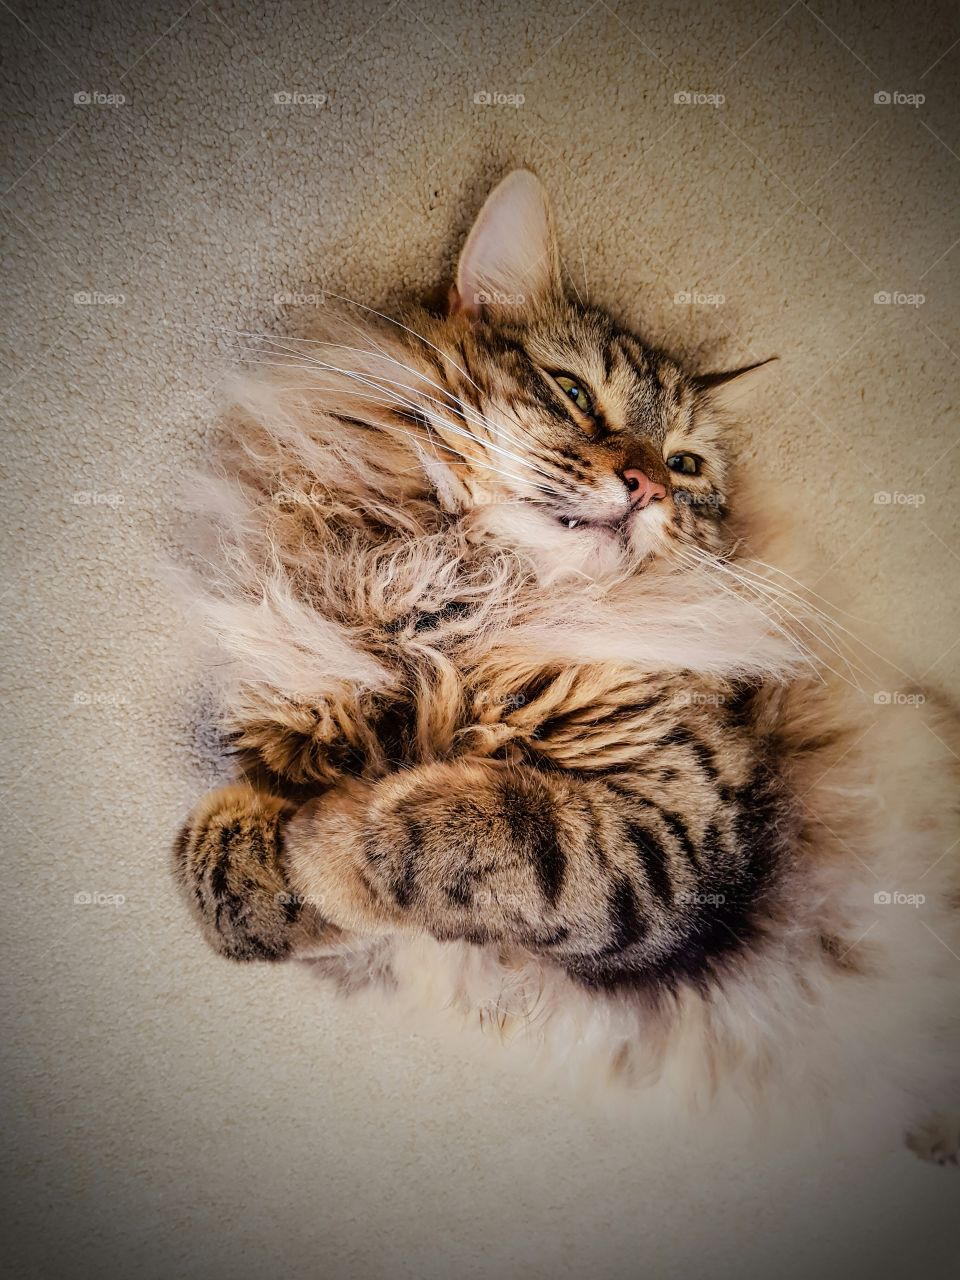 mainecoon rolling around on his back on a cream carpet